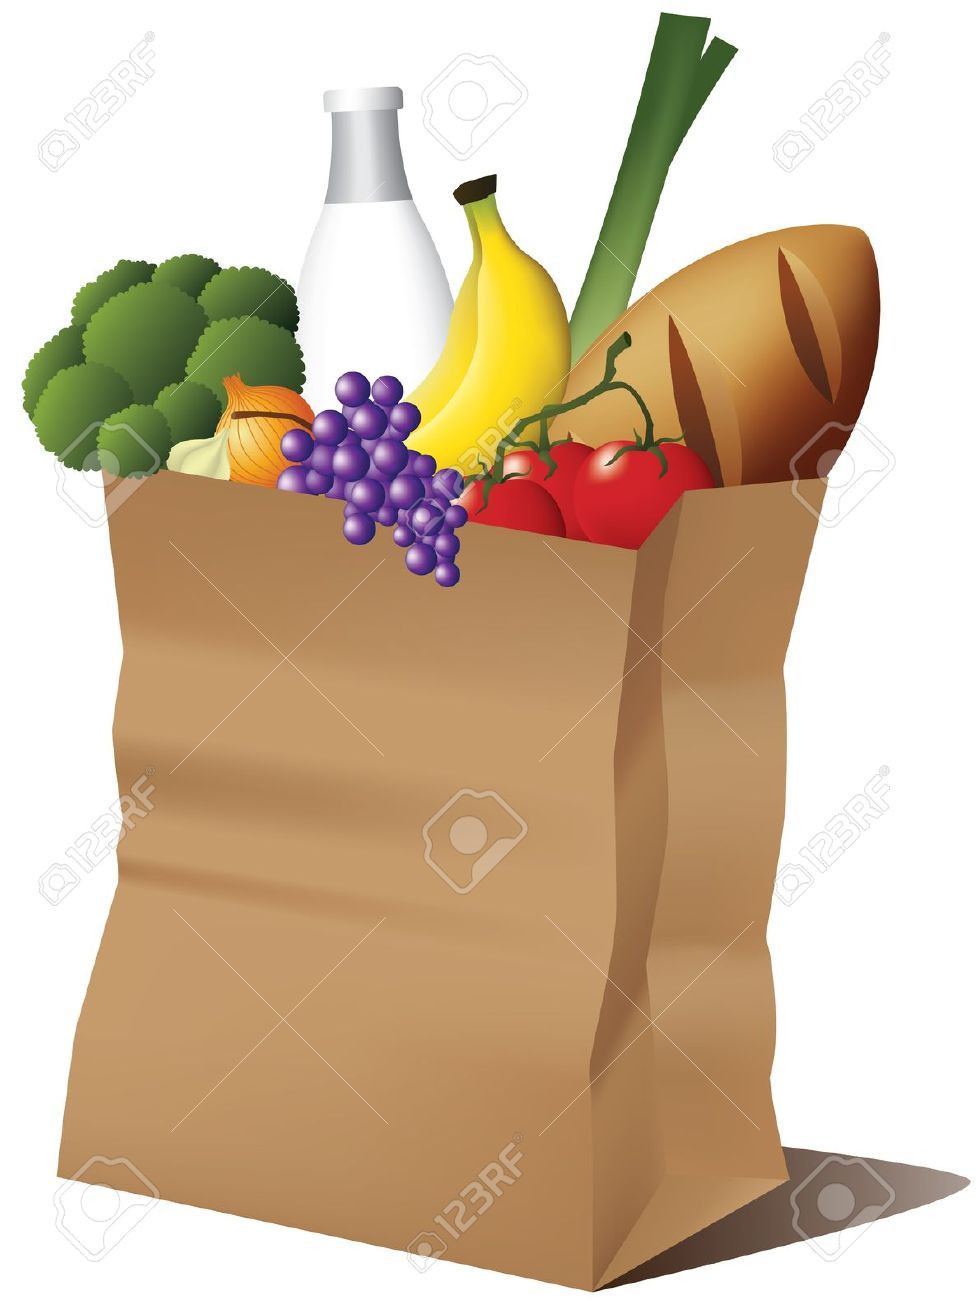 Groceries Bag: Grocery Paper .-groceries bag: Grocery paper .-5